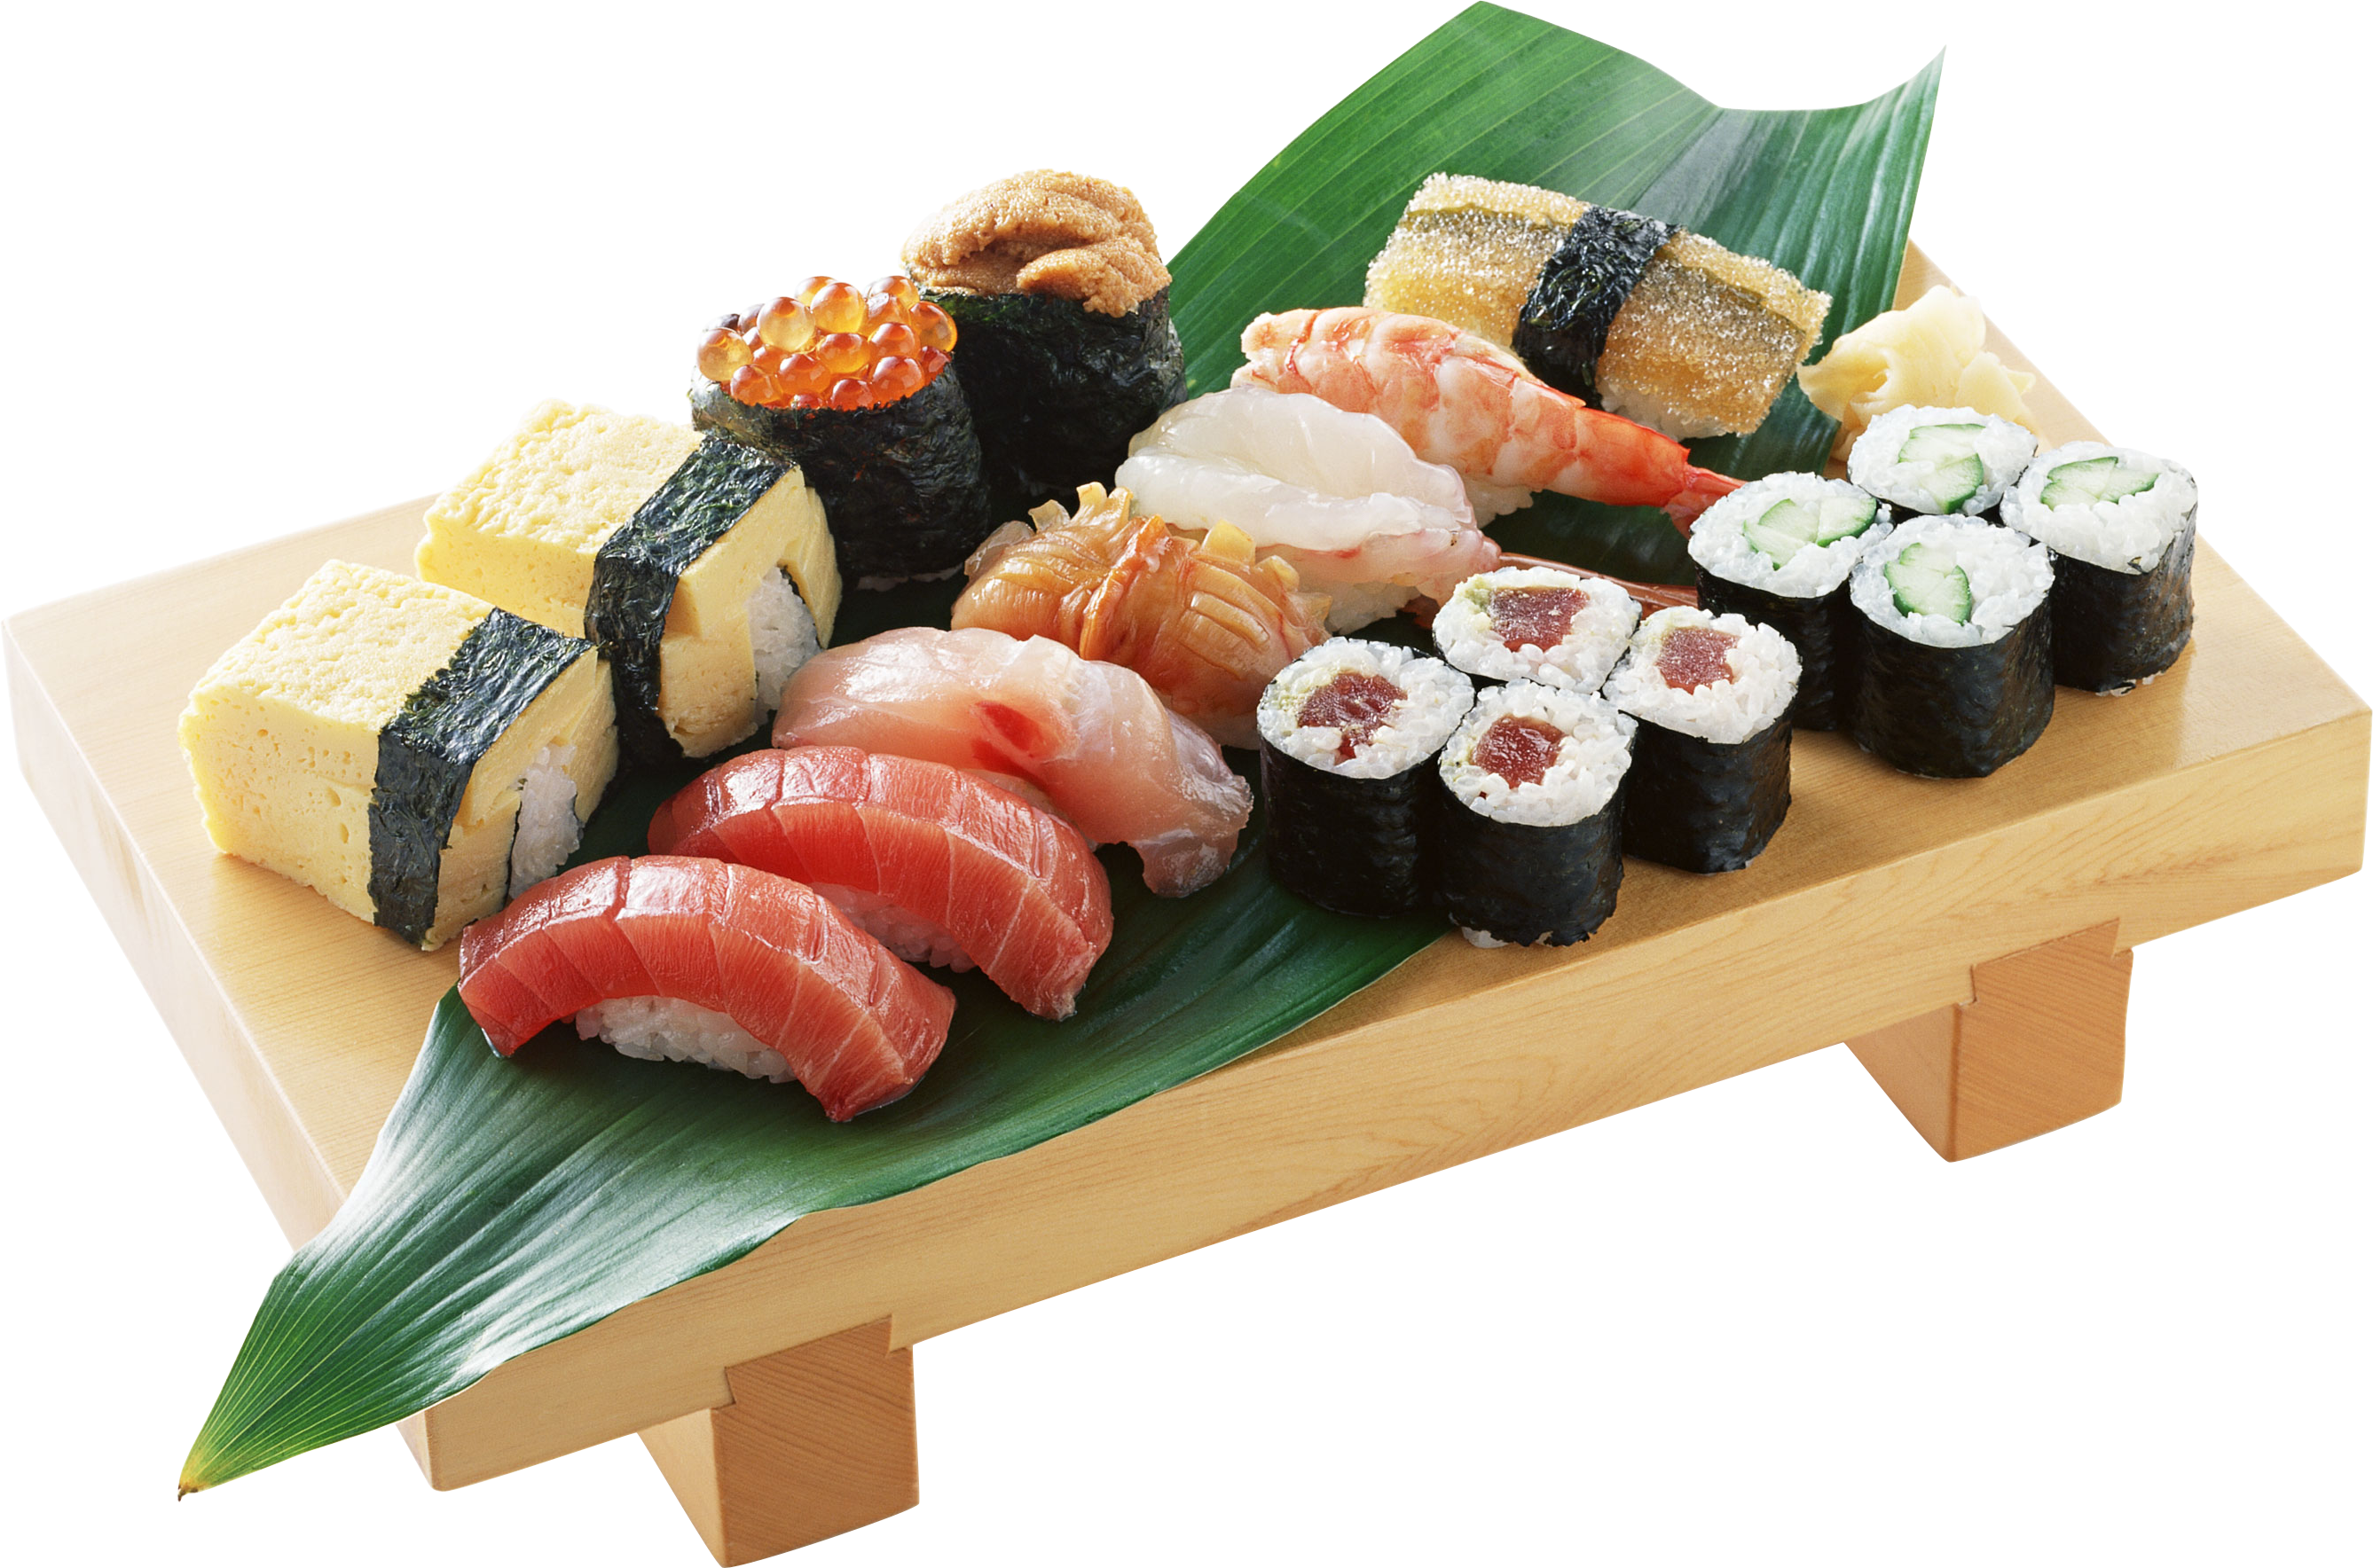 Sushi plate png. Image result for hd